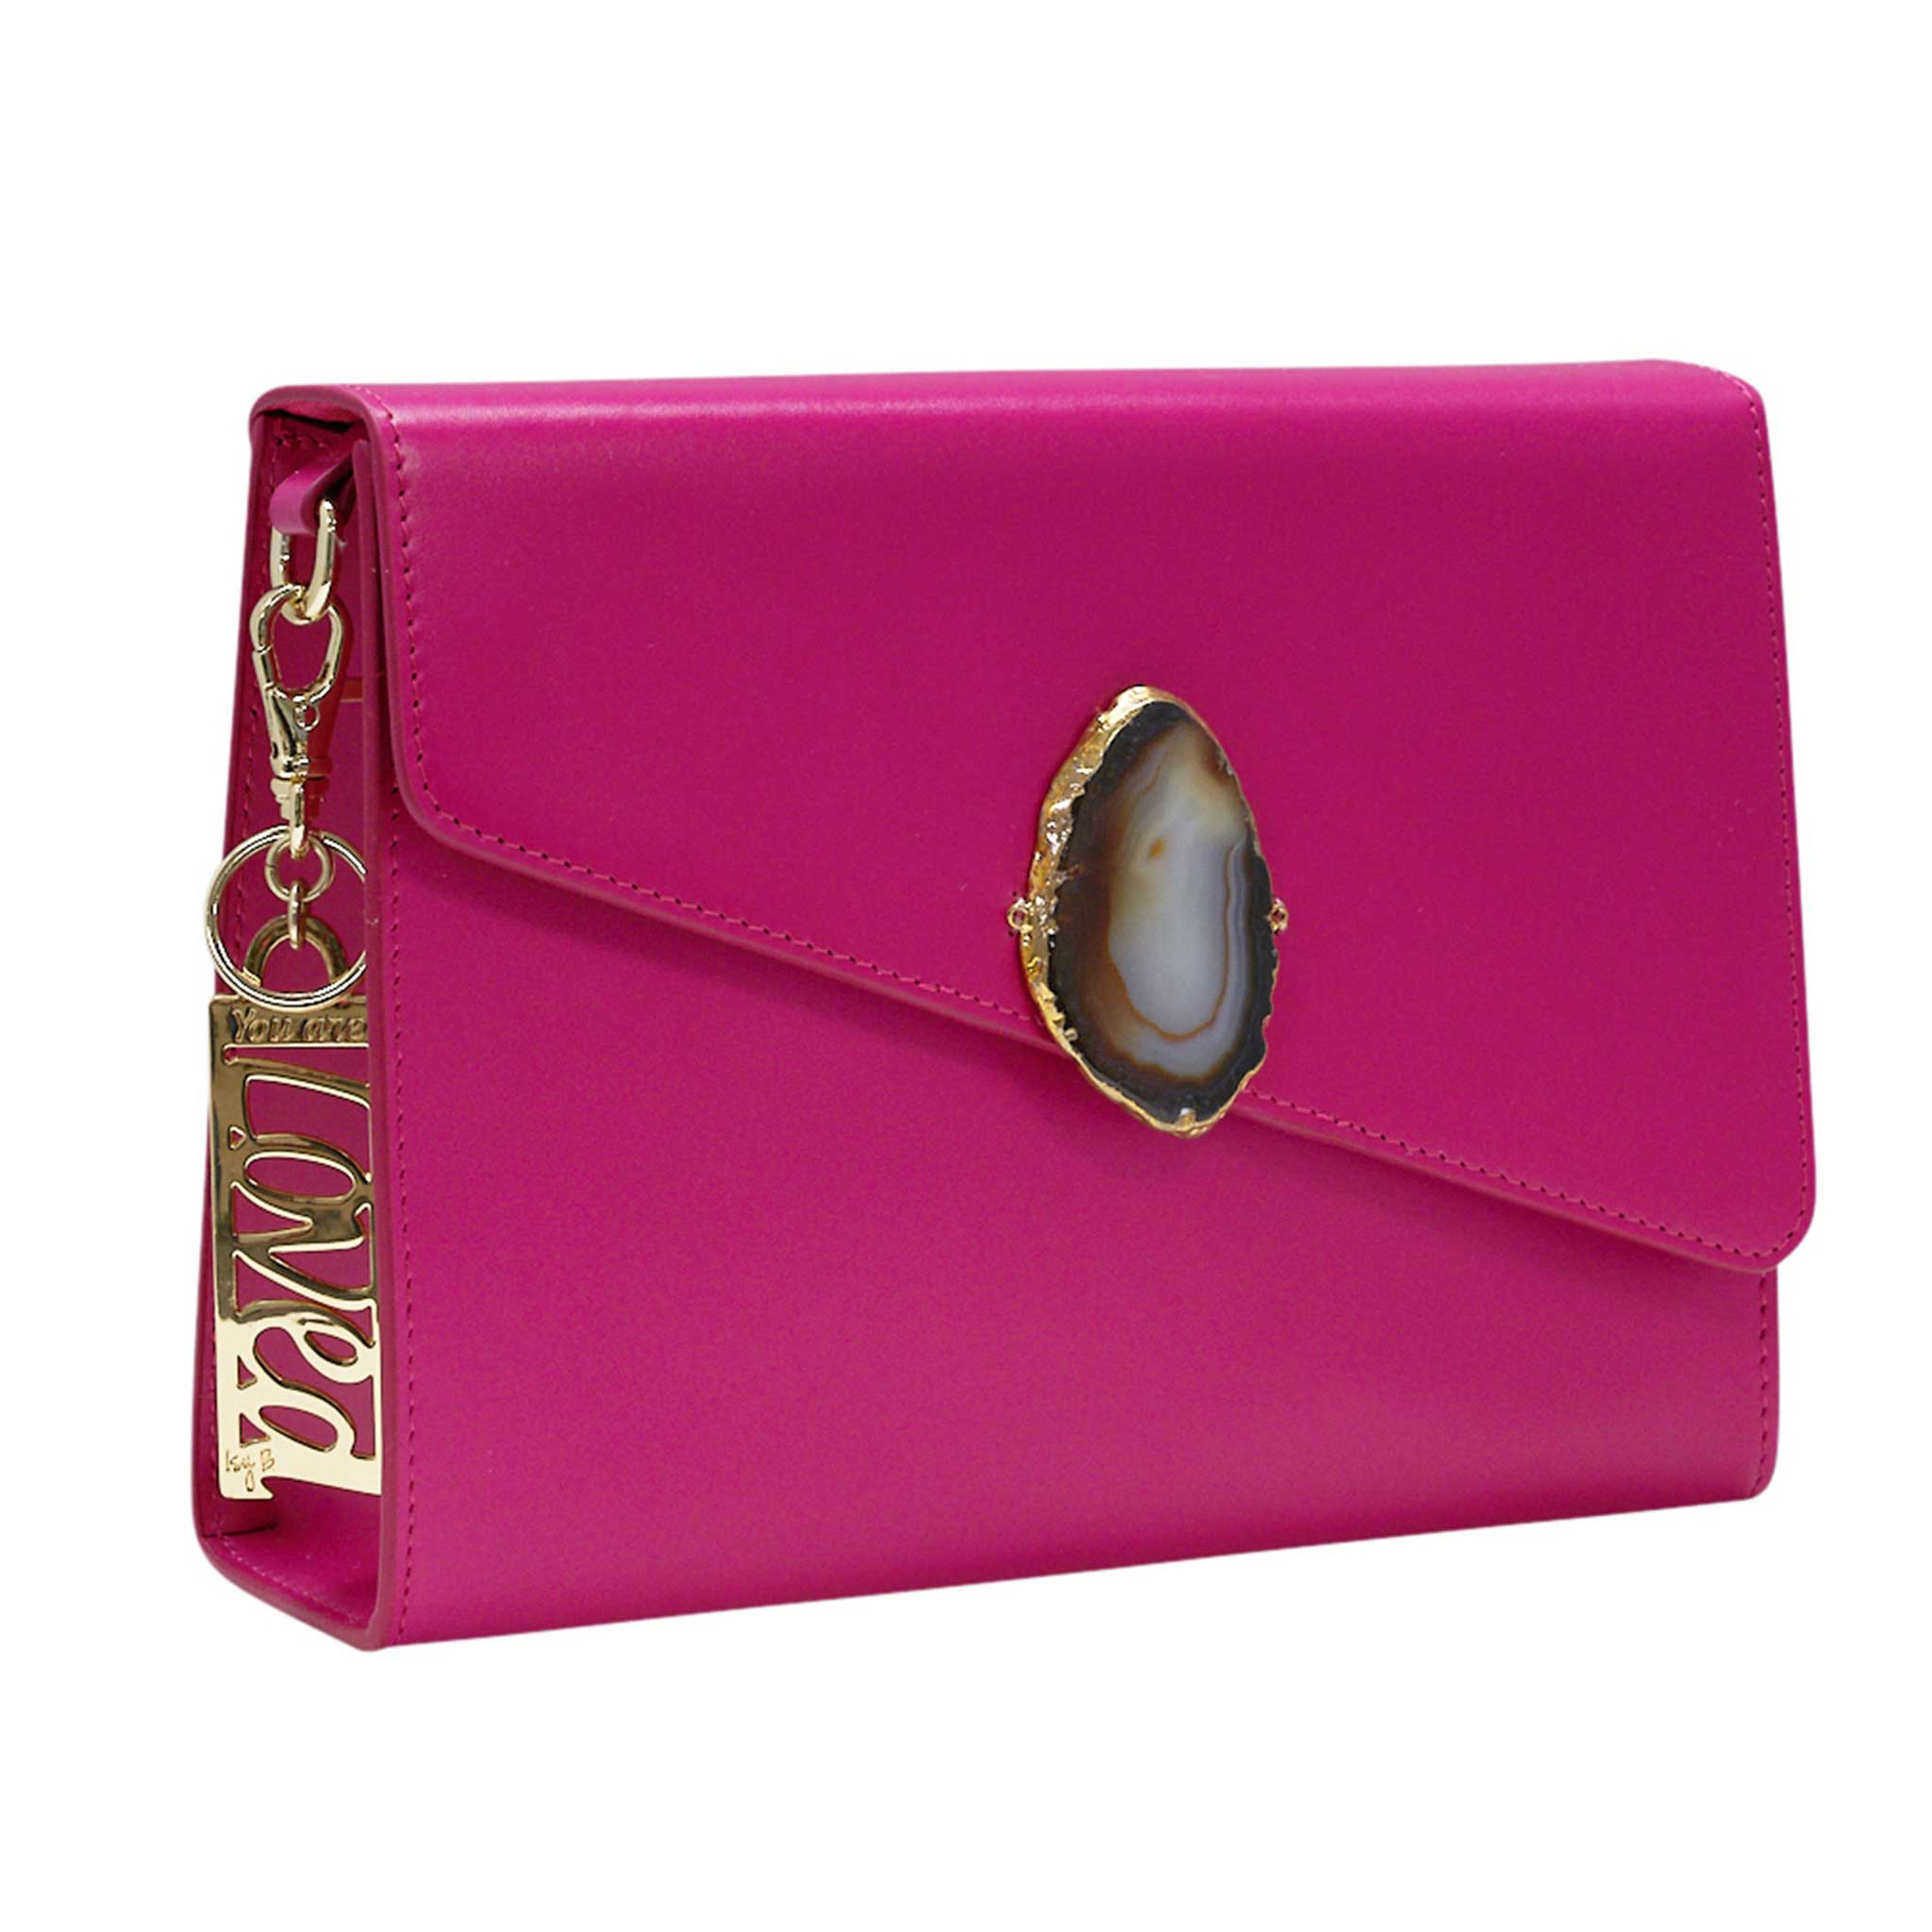 LOVED BAG - PINK RUBY LEATHER WITH BROWN AGATE - 1.01.004.048